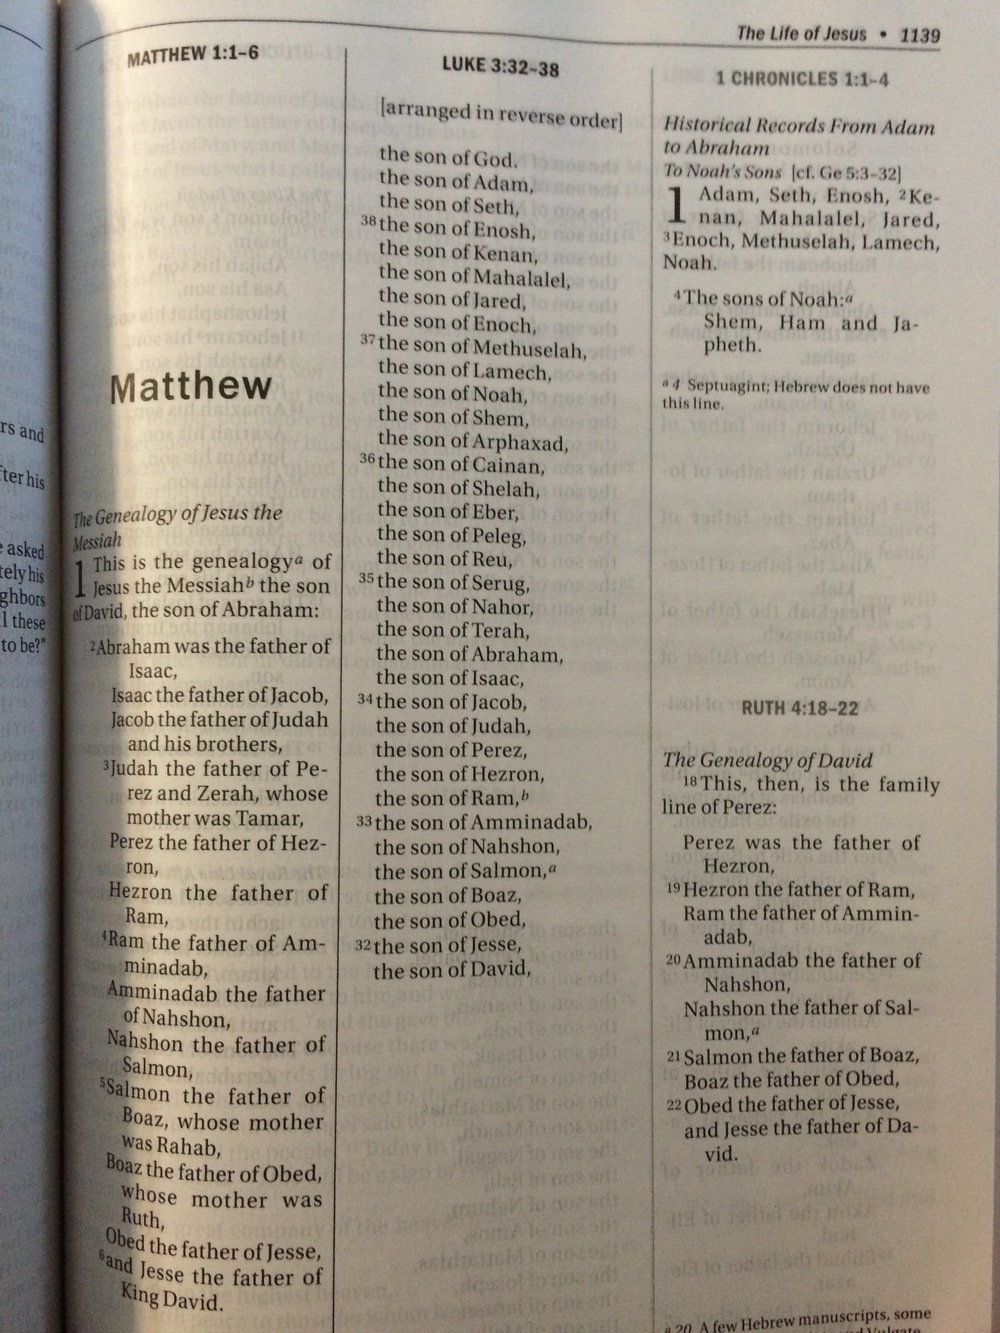 Example picture from the genealogy of Jesus